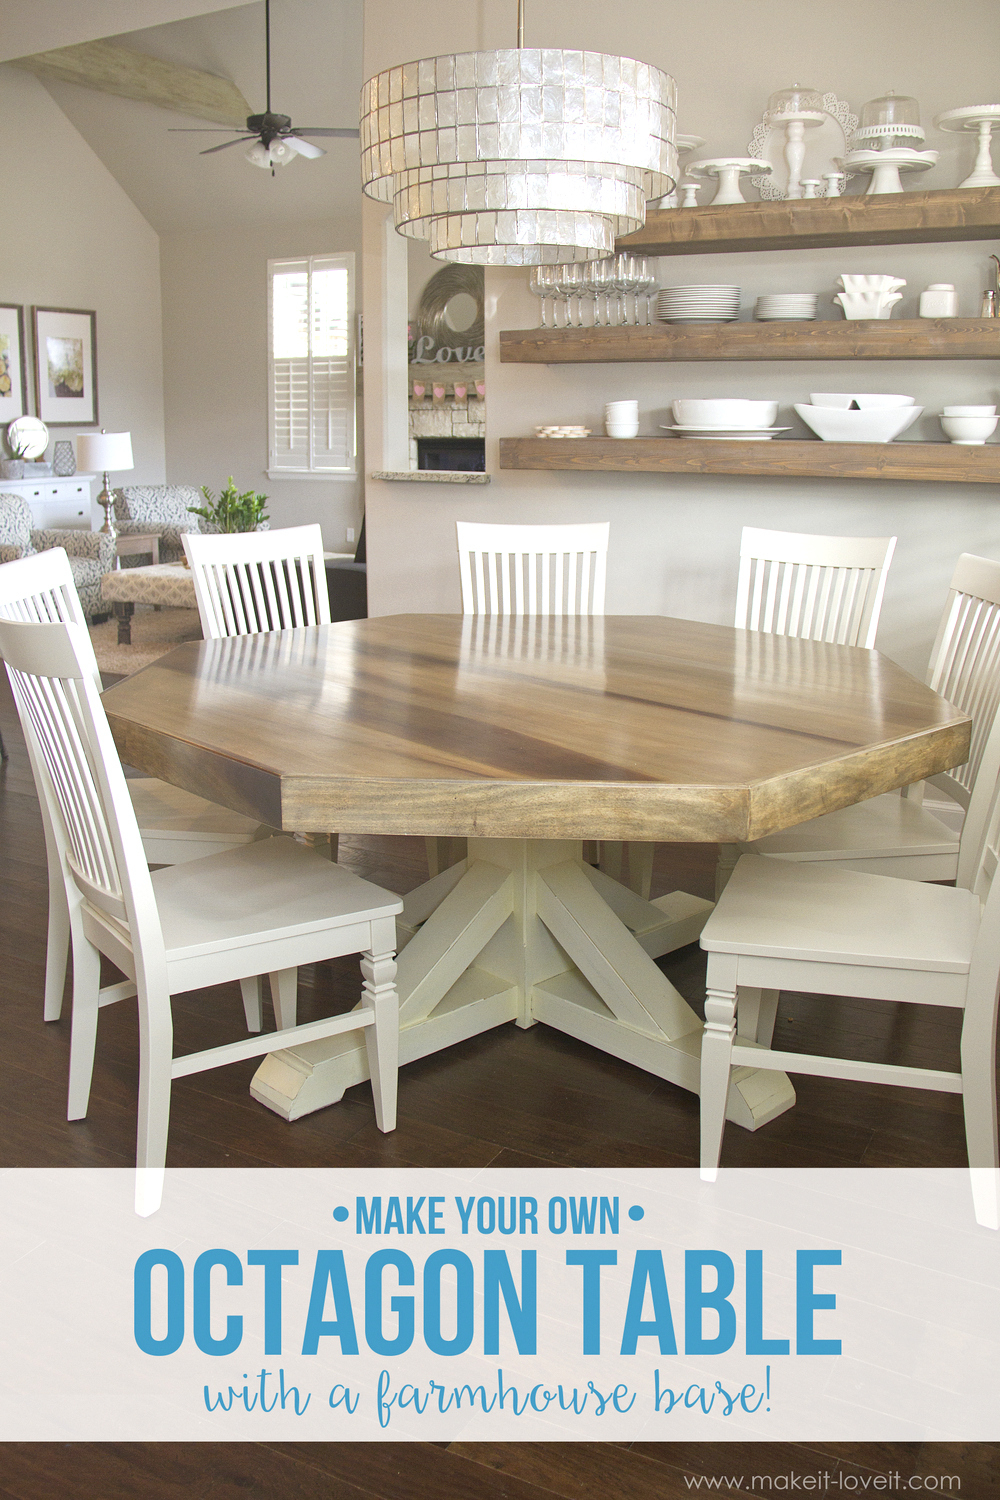 Diy Octagon Dining Room Tablewith A Farmhouse Base intended for sizing 1000 X 1500